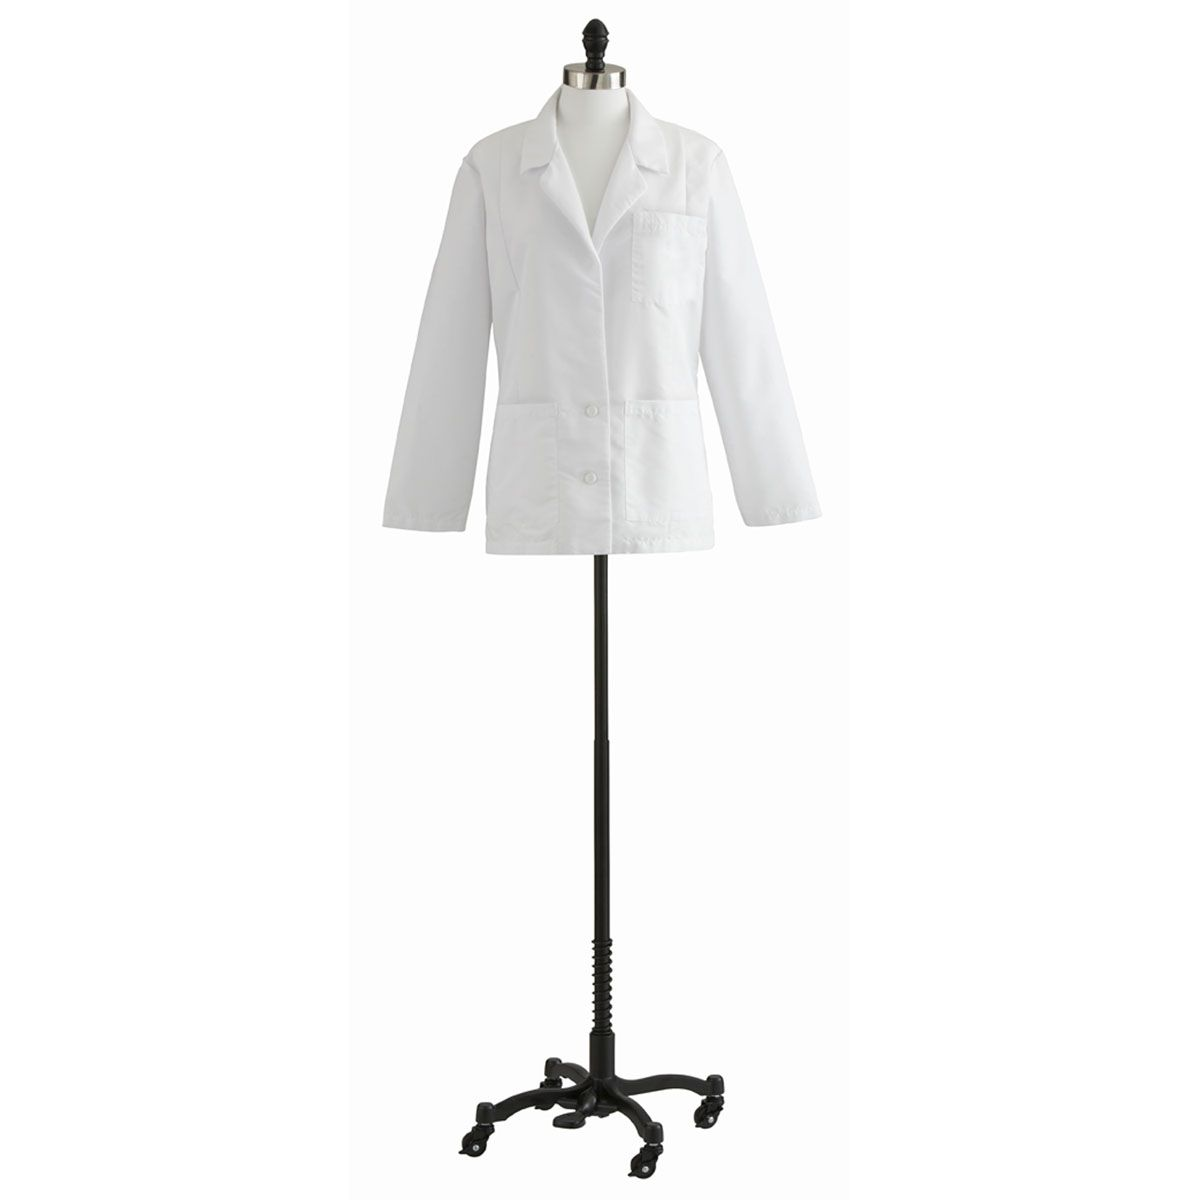 Medline Ladies Consultation Coat - White, 10, Each - Model 88018QHW10